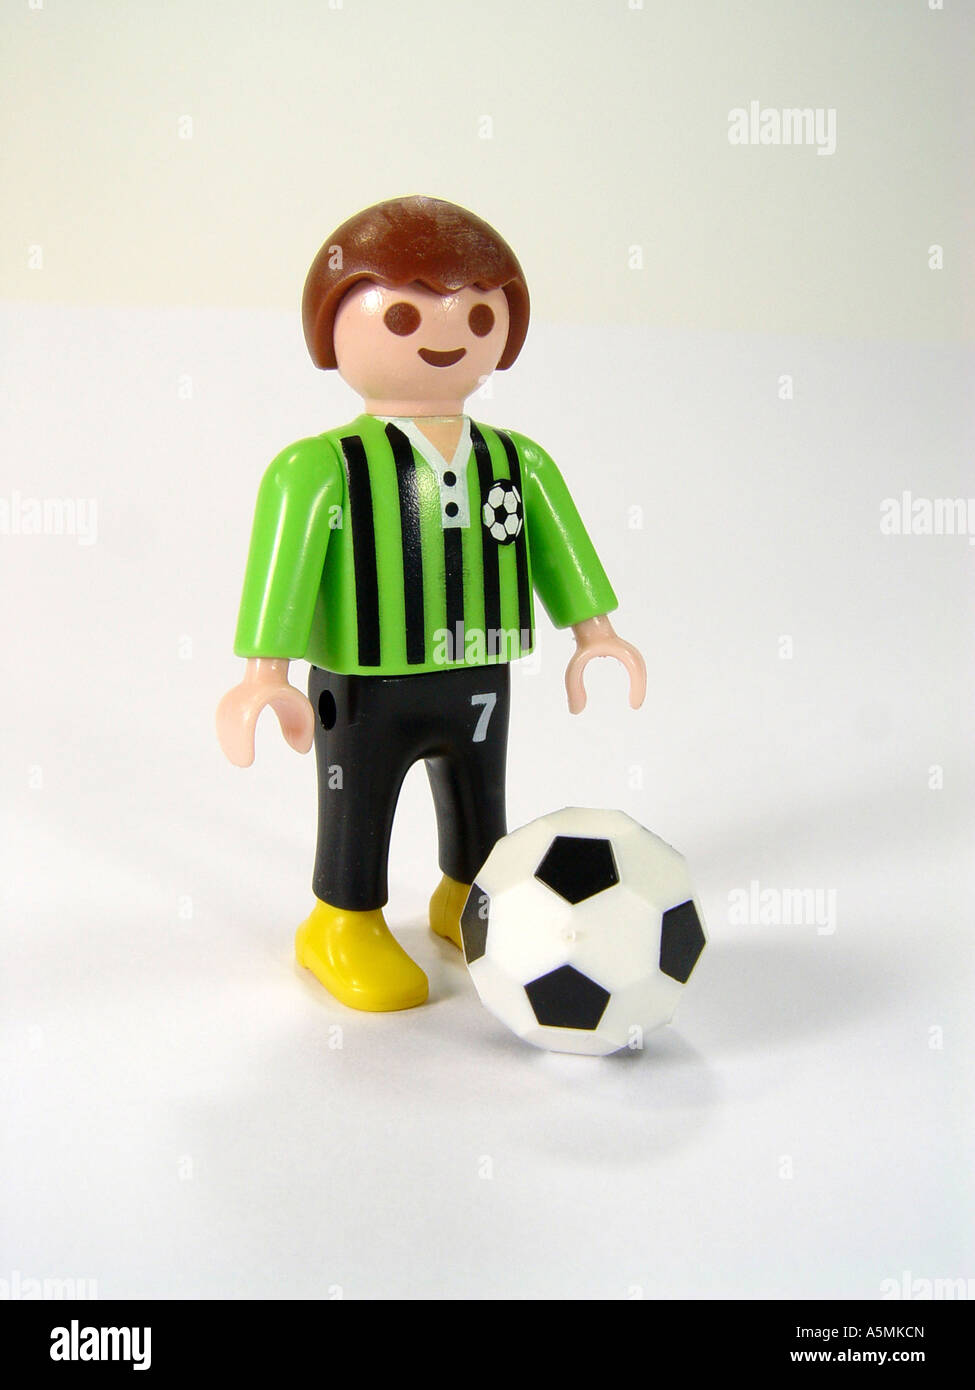 Fußballer soccer player - Stock Image